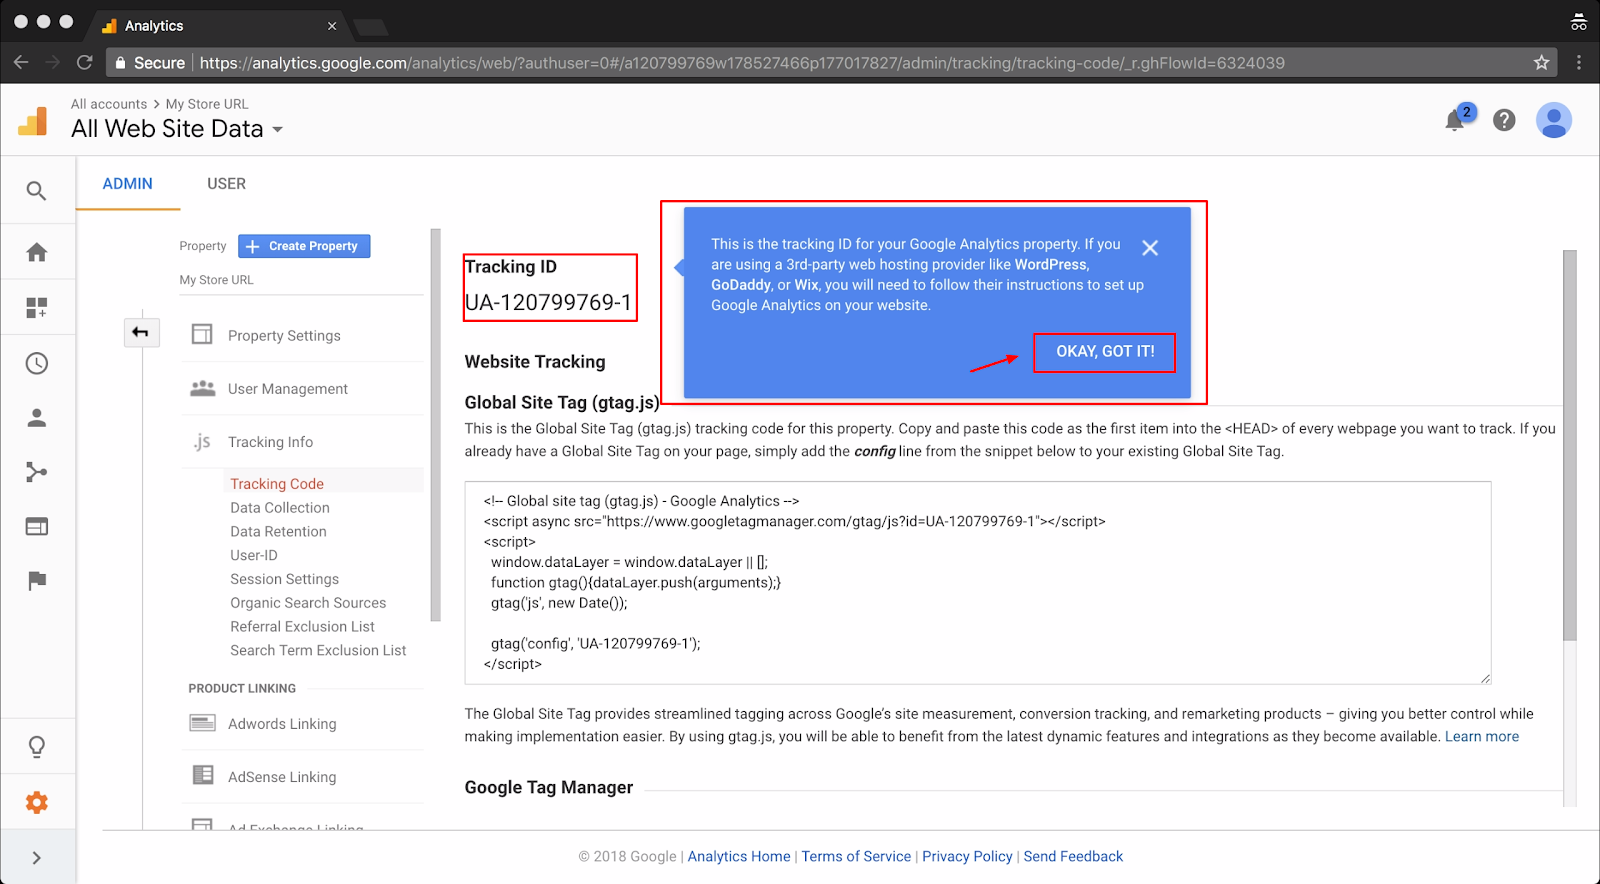 Screenshot showing a page on google analytics